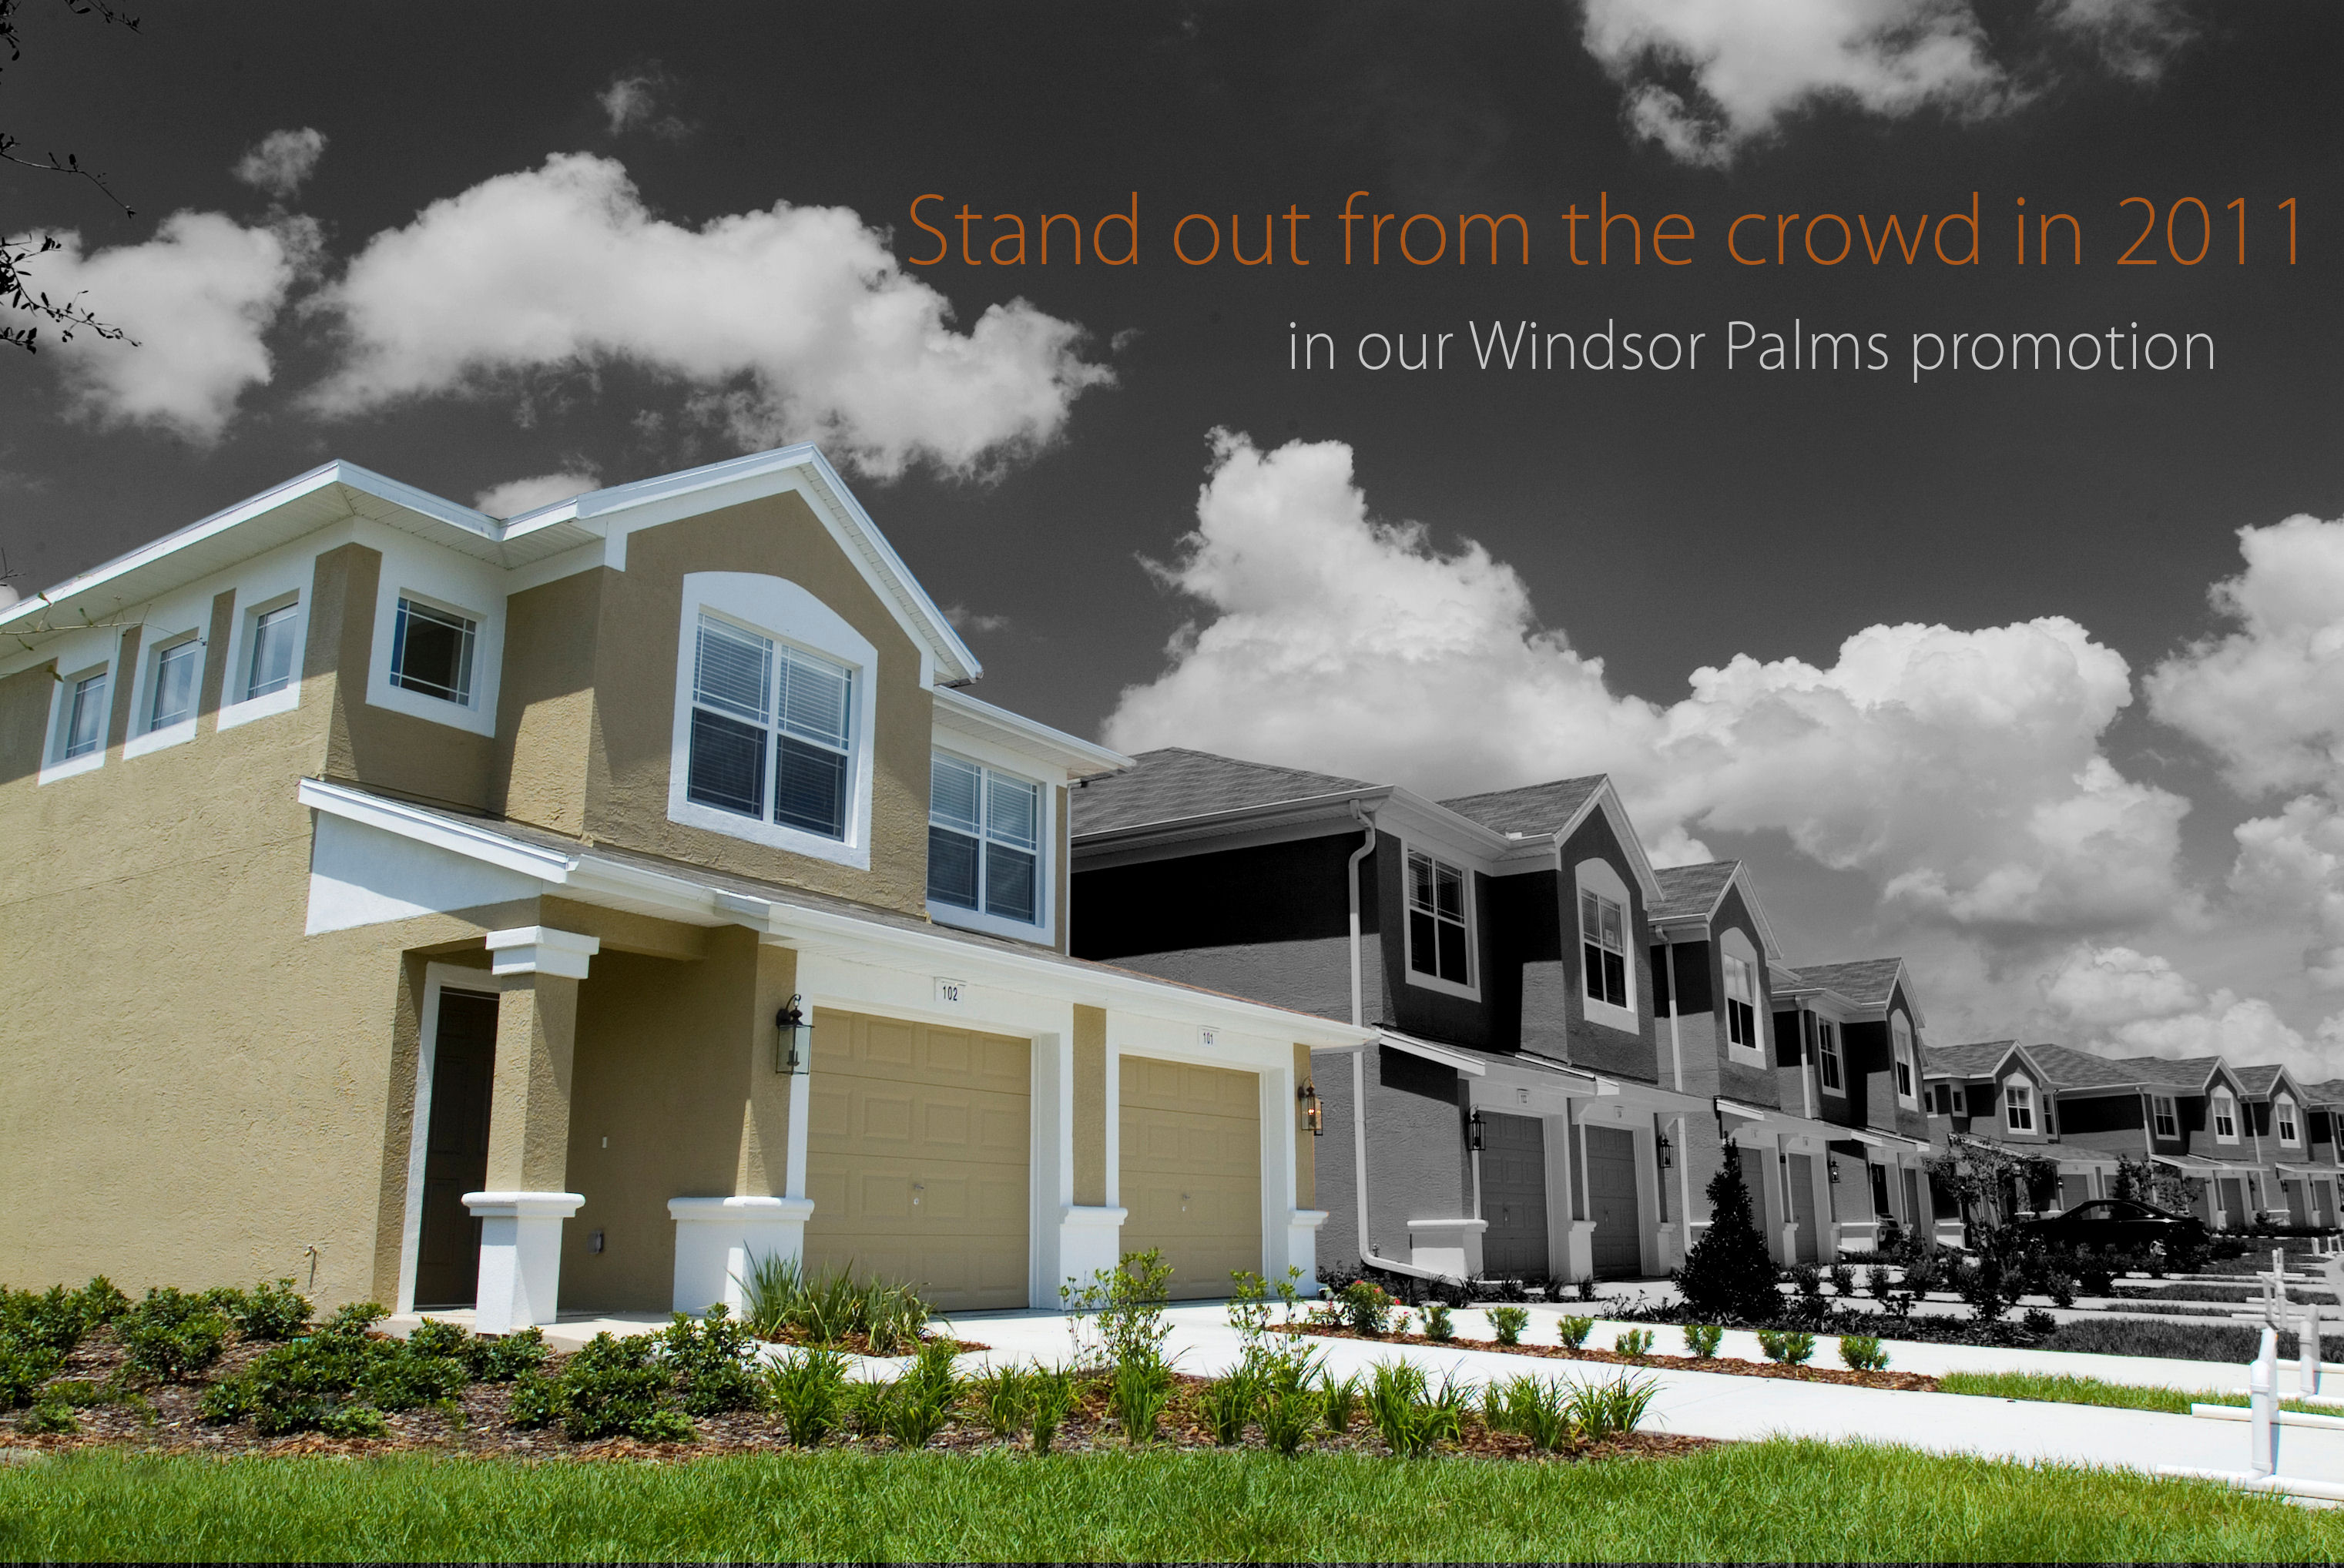 Windsor Palms Florida, properties with videos